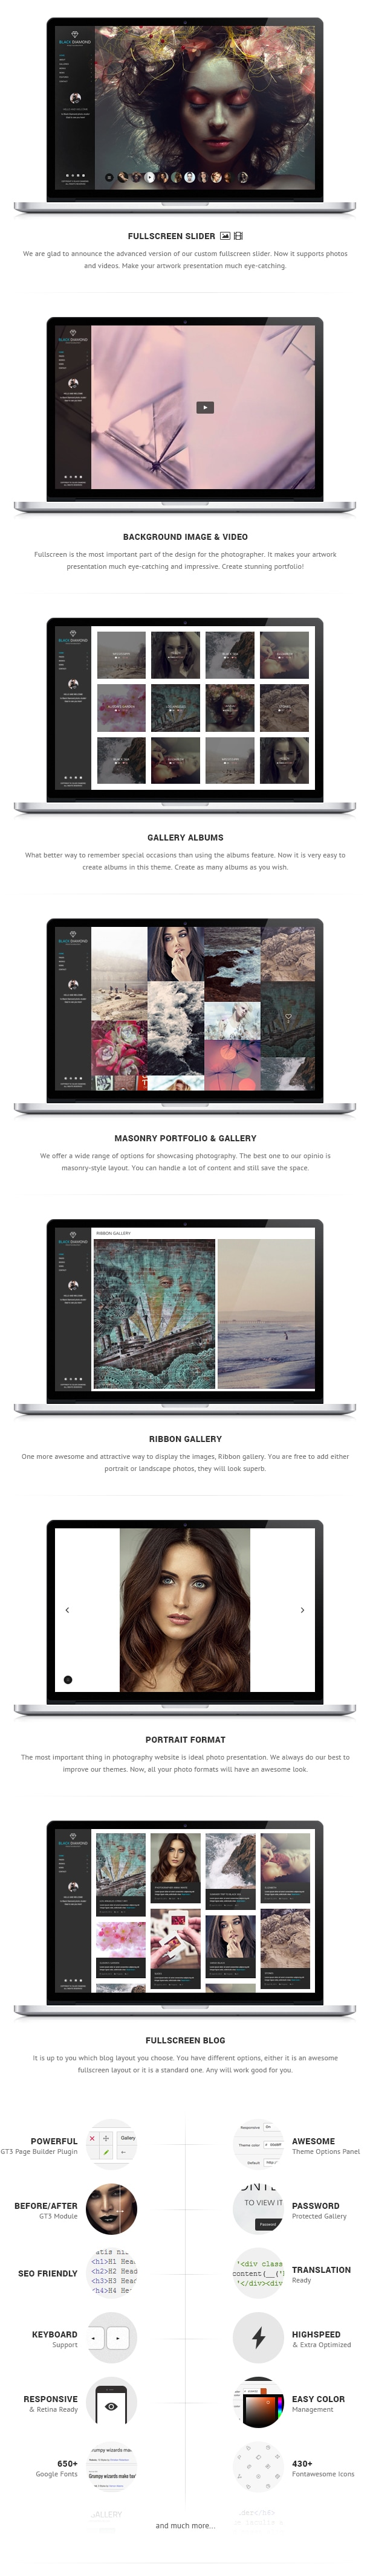 DIAMOND - Photography WordPress Theme - 1